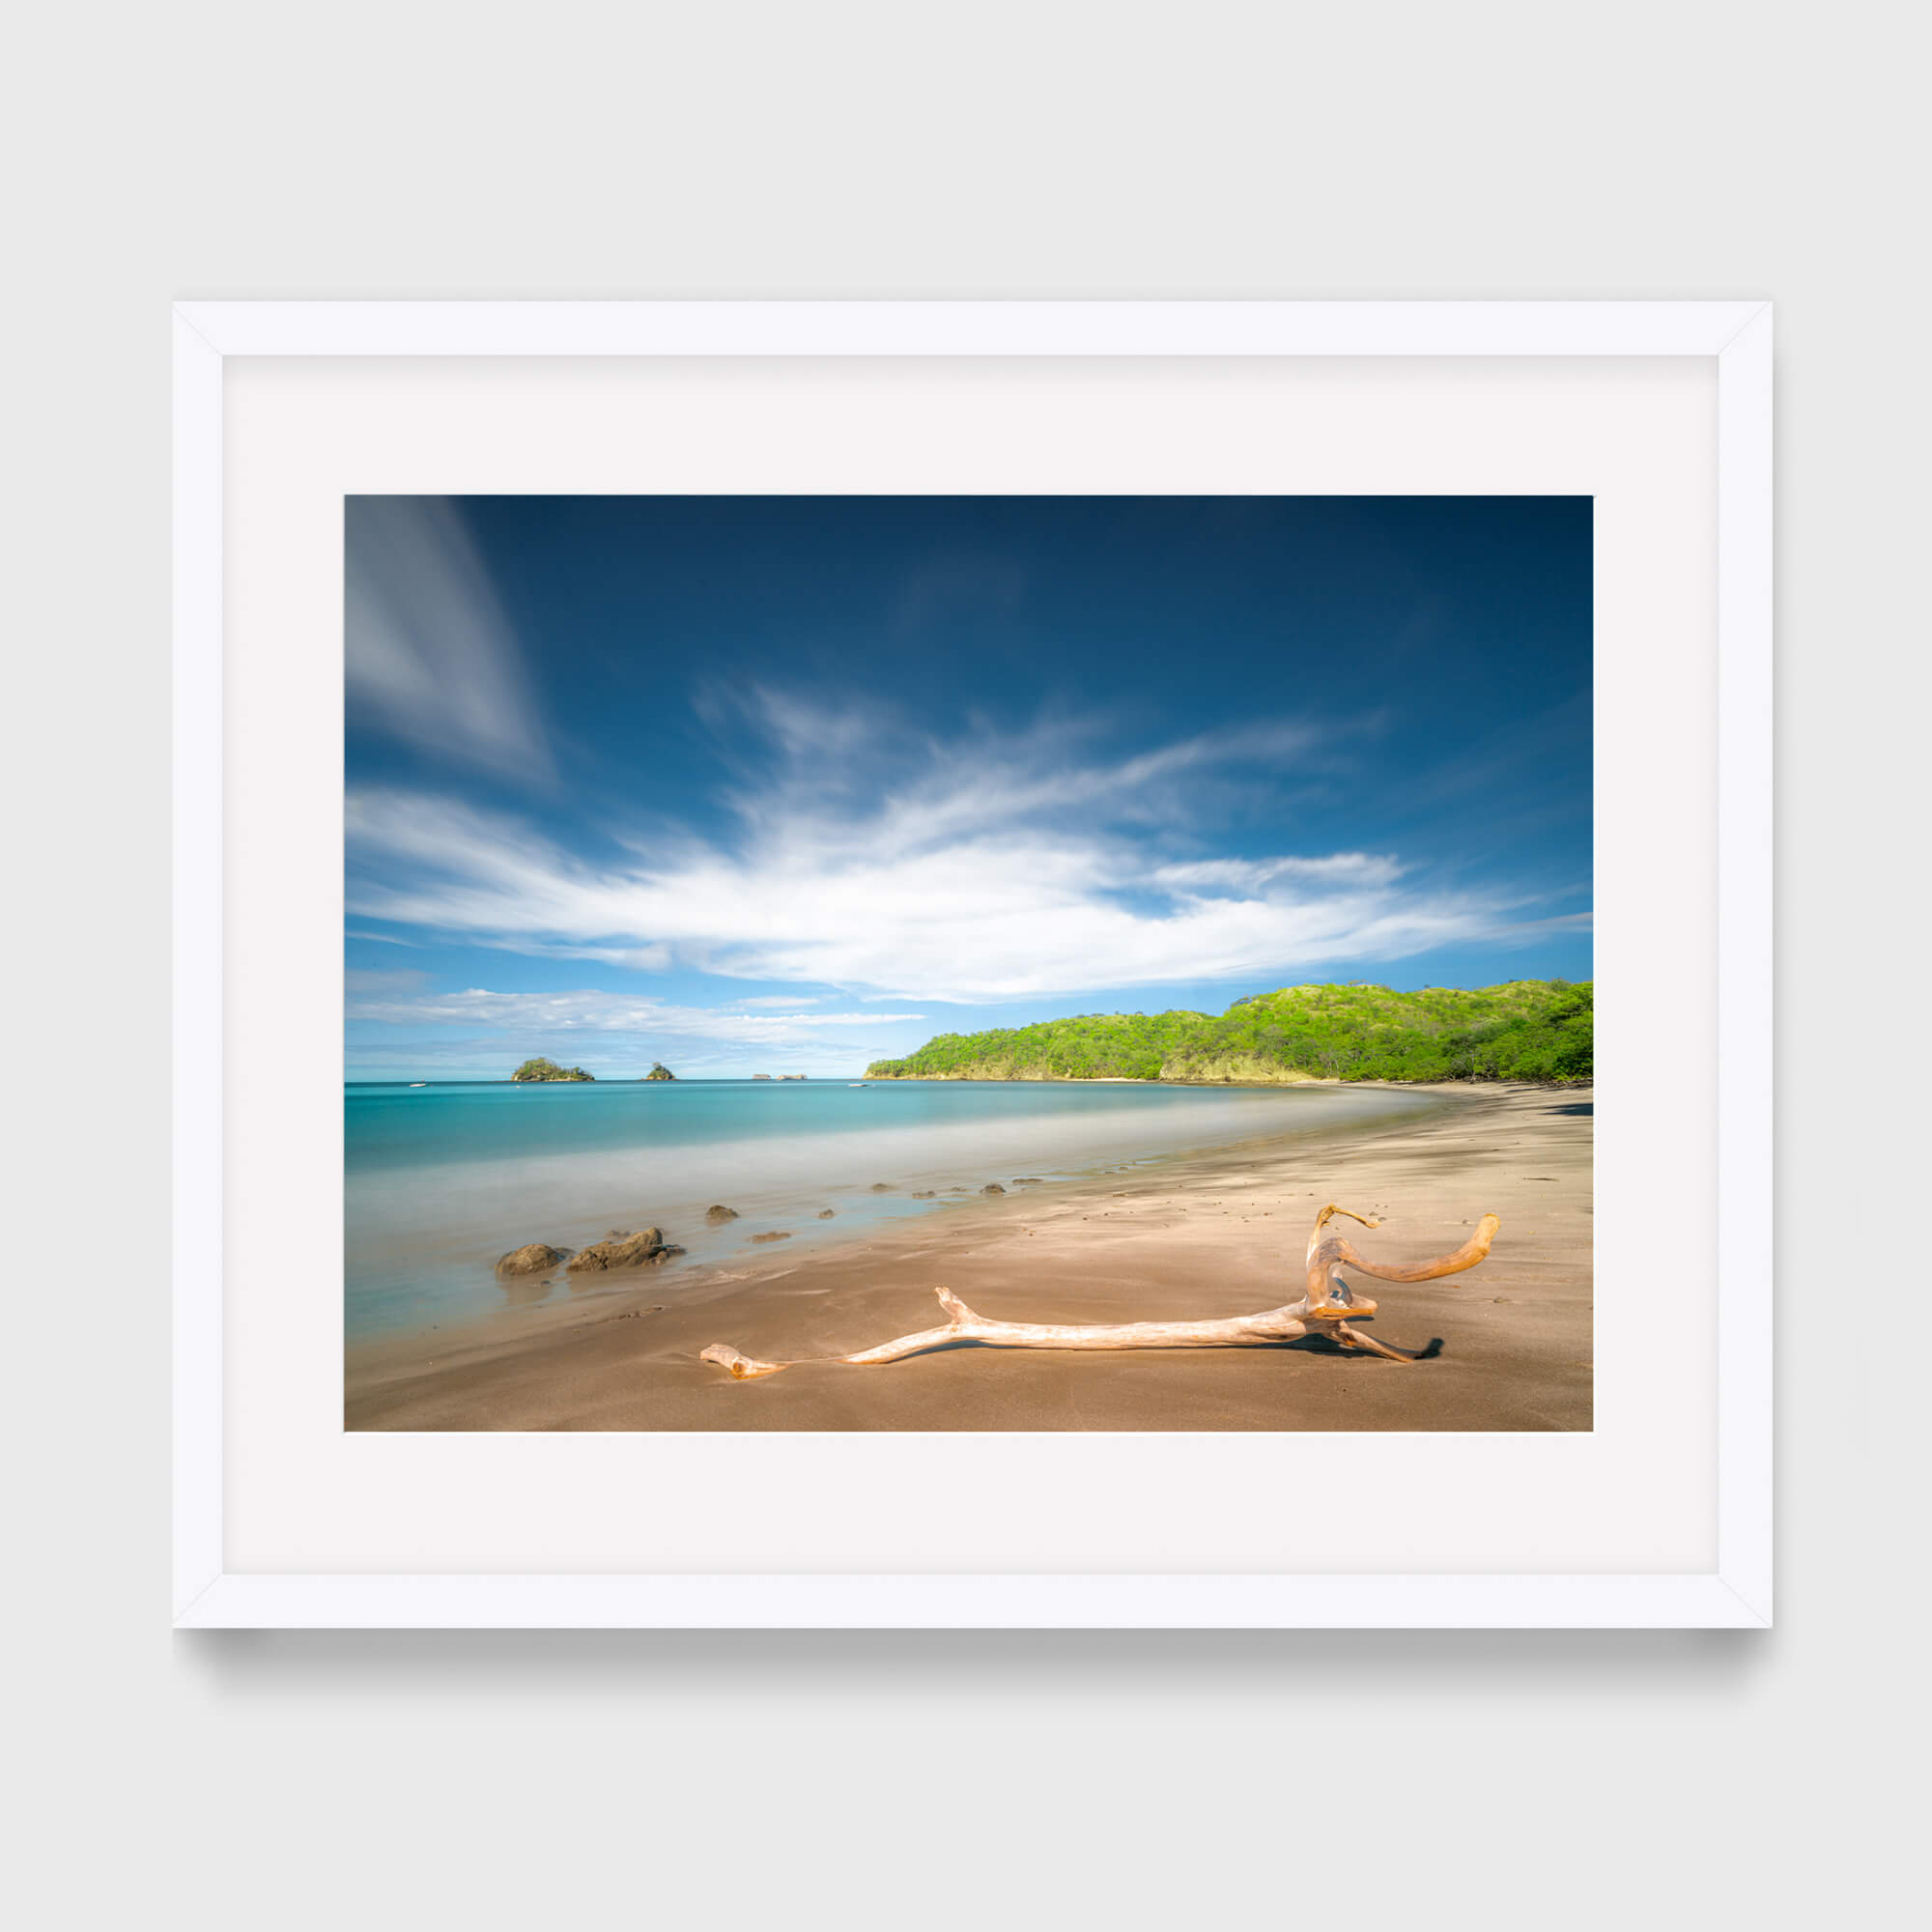 Cove Beach - Care Studio Prints